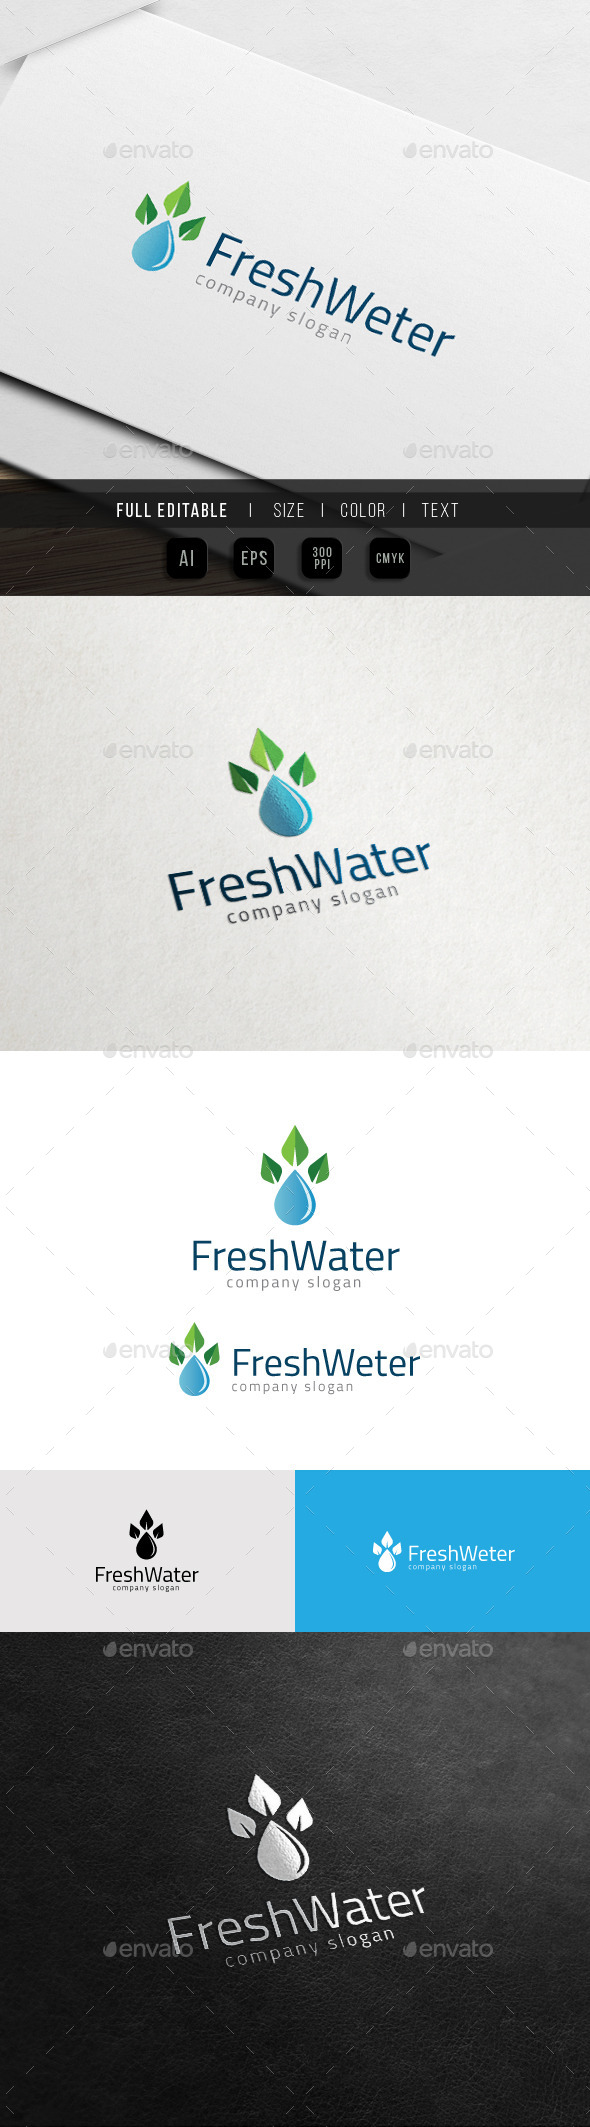 Eco Fresh Property - Mineral Water Drop Logo